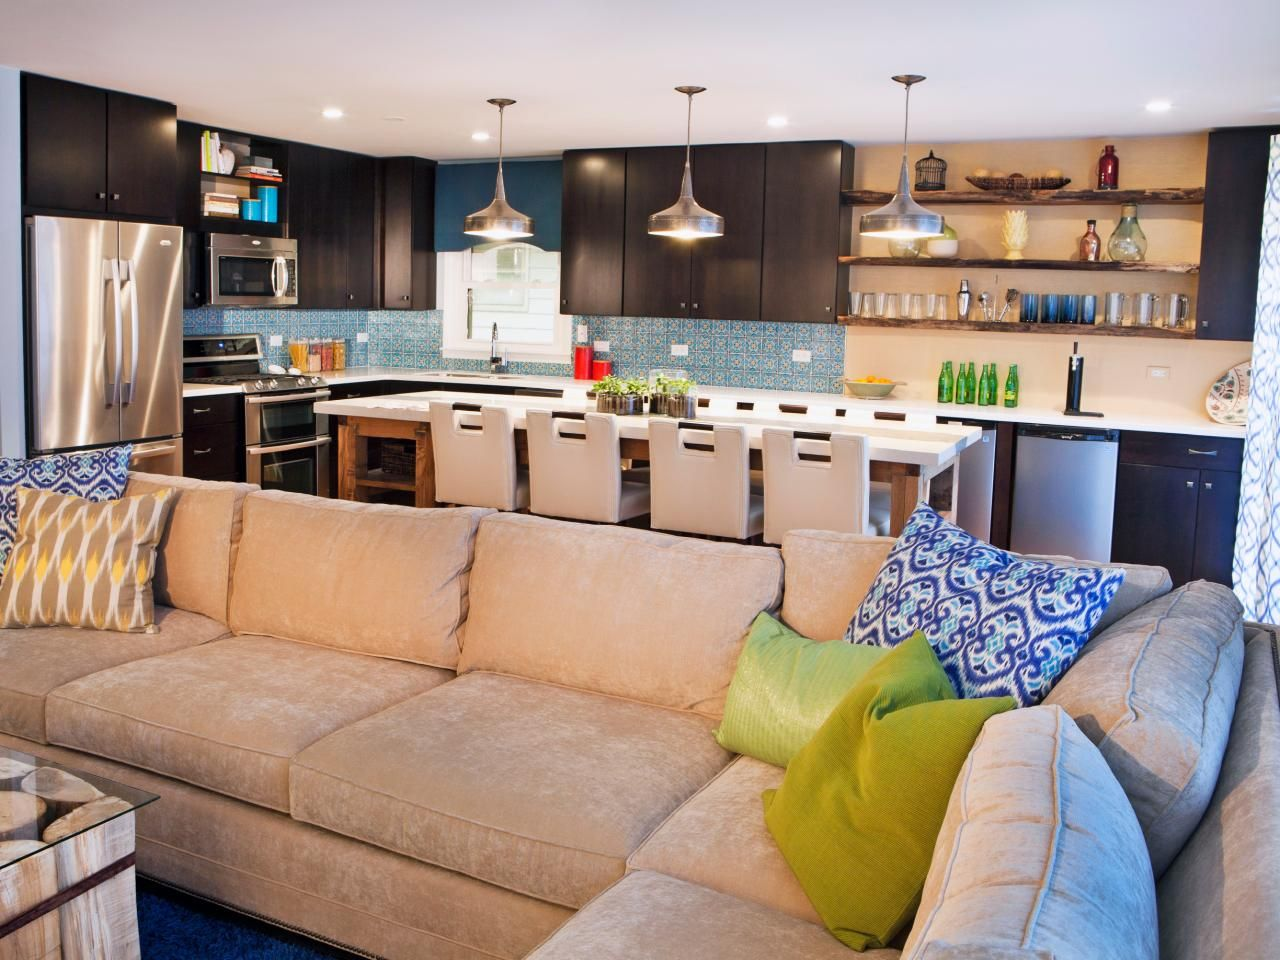 Contemporary Open Living Space With Tan Sectional Sofa Open Kitchen And Living Room Contemporary Kitchen Open Concept Living Room #open #concept #living #room #with #sectional